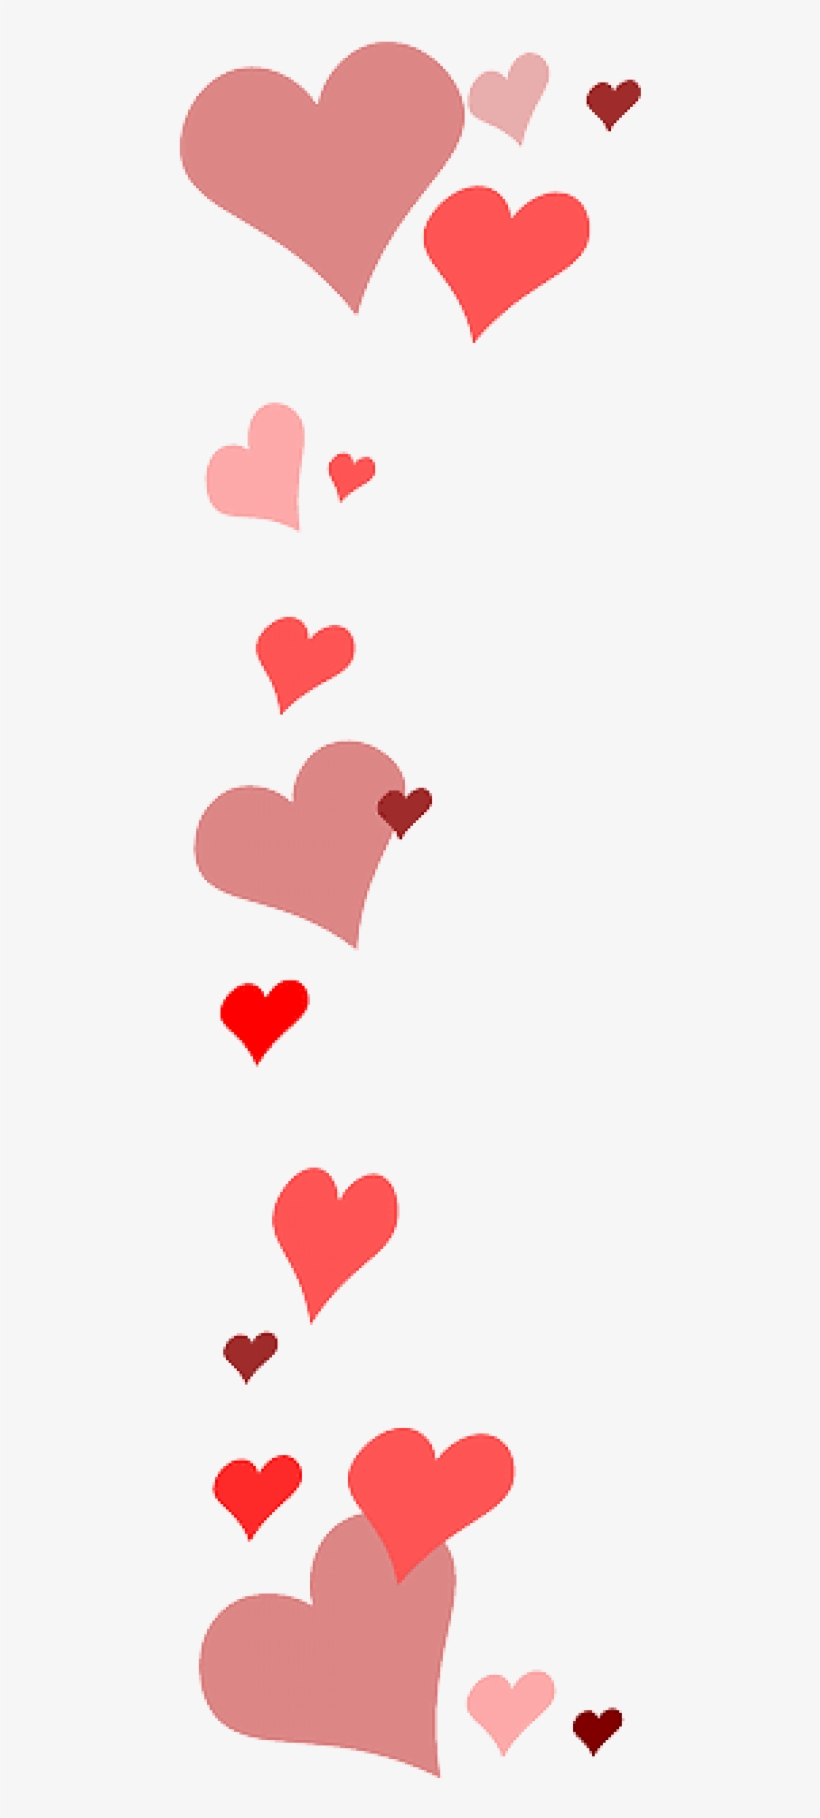 Red, Heart, Page, Love, Border, Pink, Hearts, Valentine - Red Heart Border Transparent, transparent png #243899